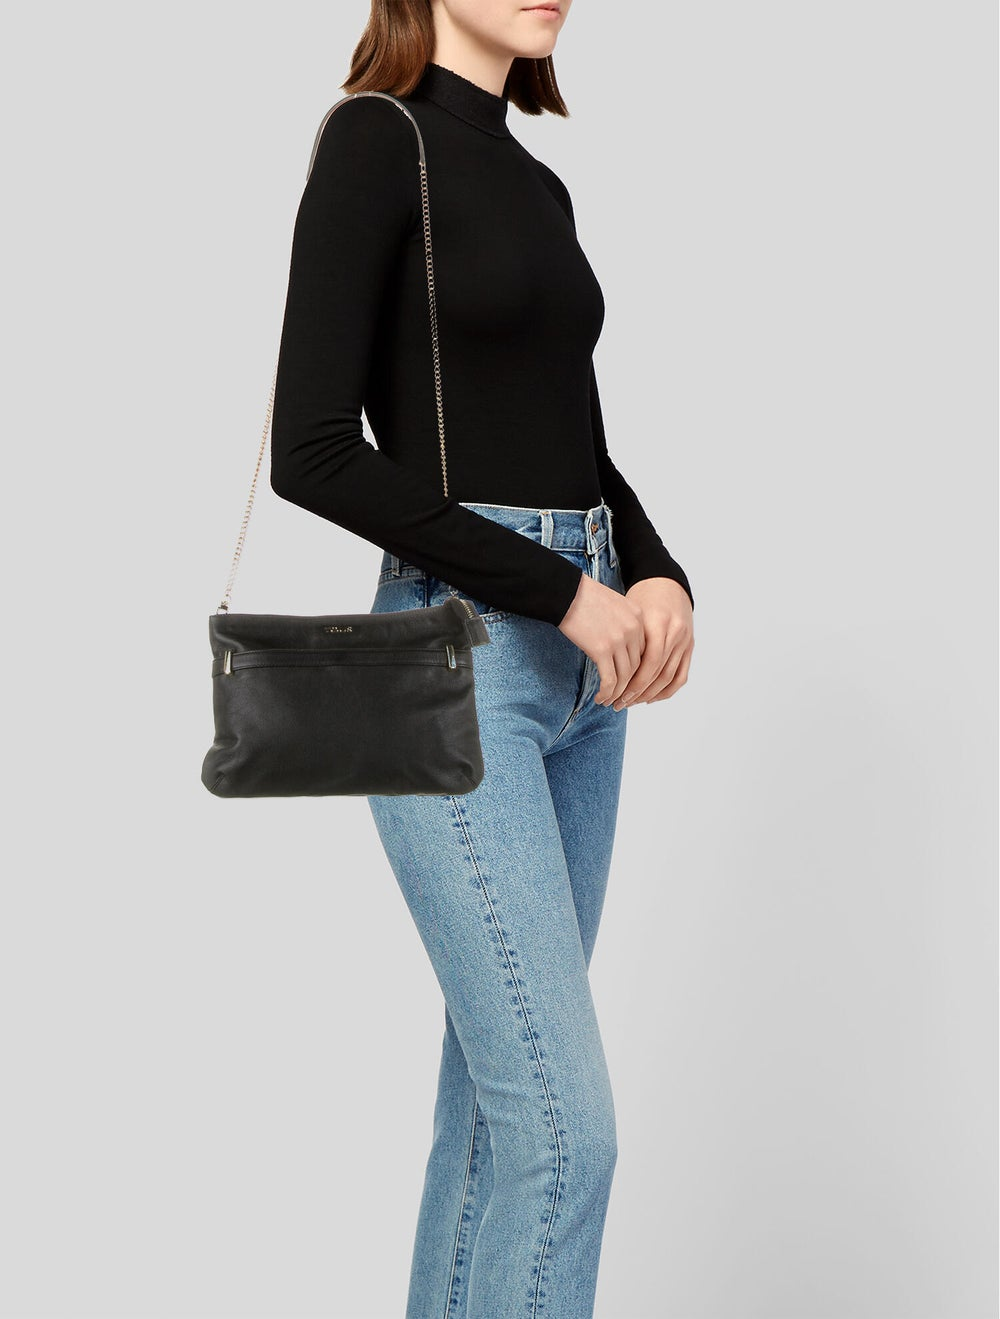 Tous Leather Crossbody Bag Black - image 2